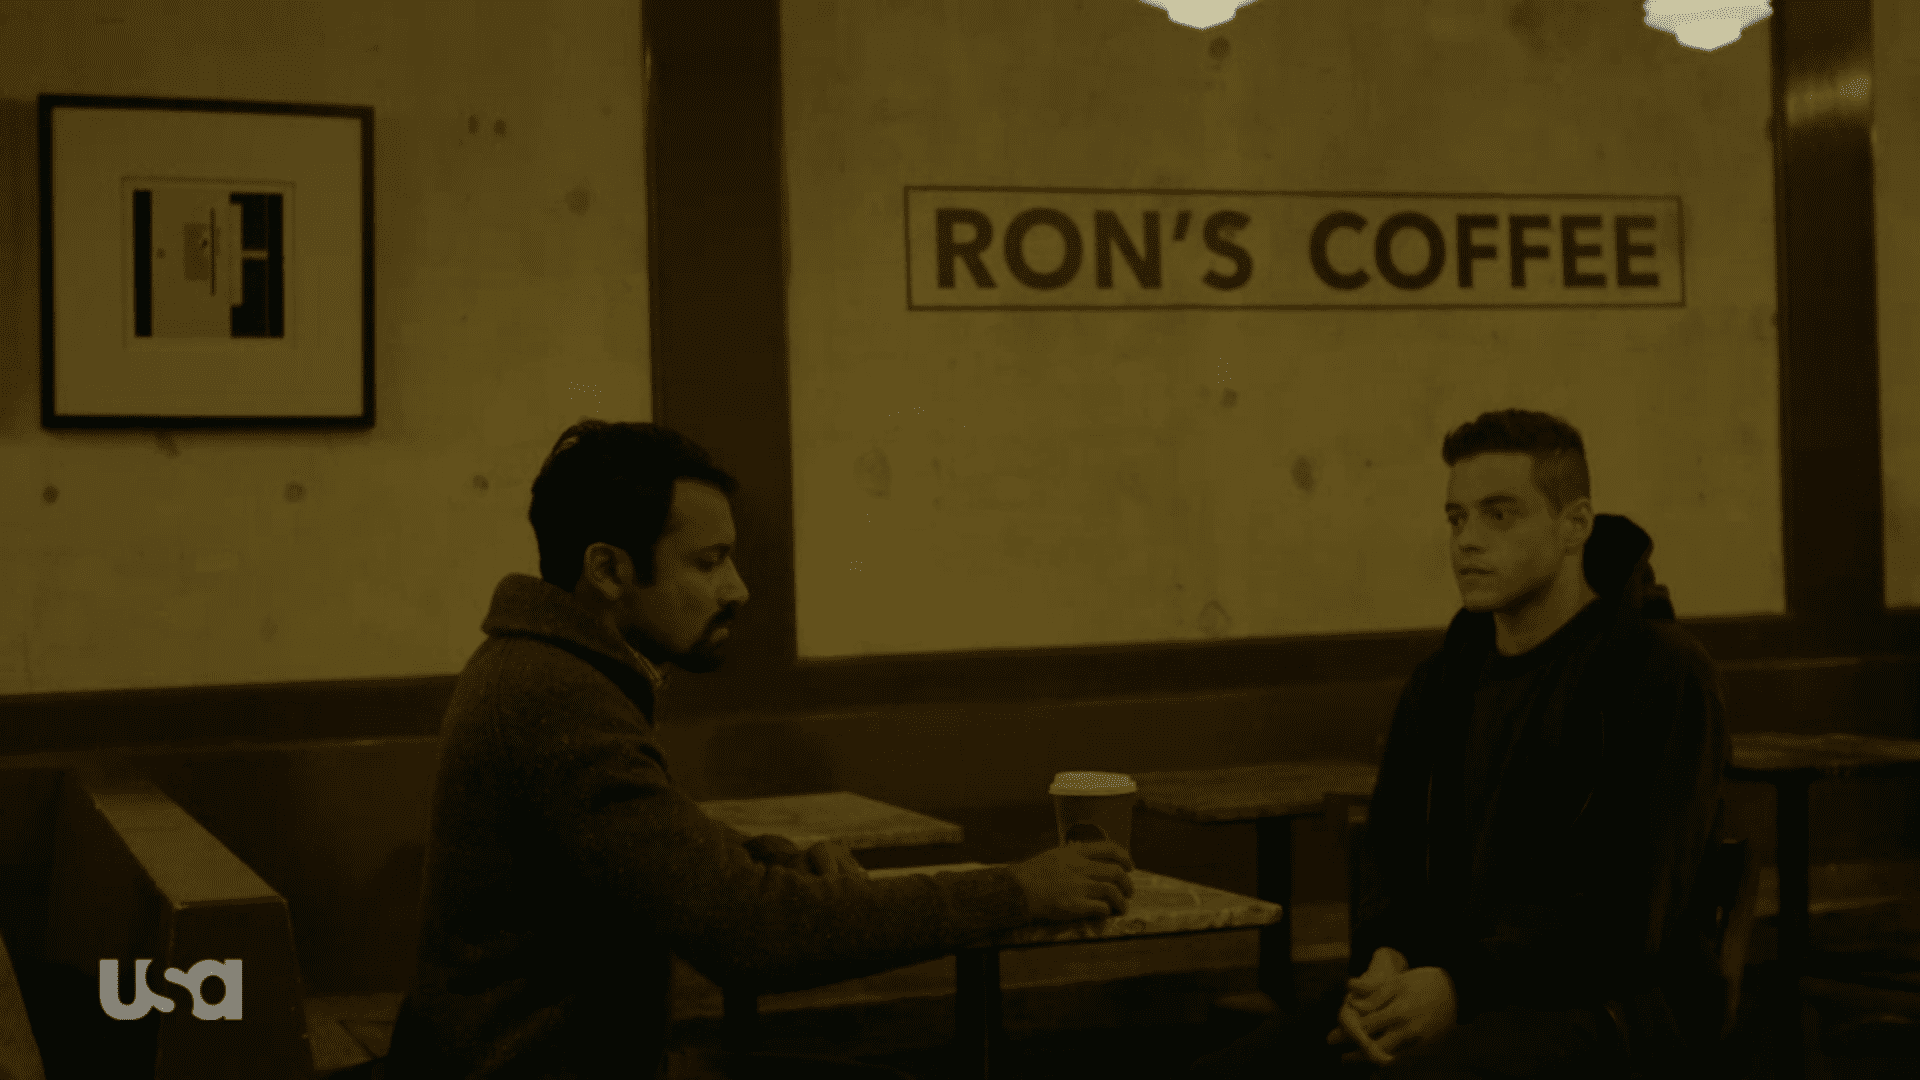 Rons_coffee